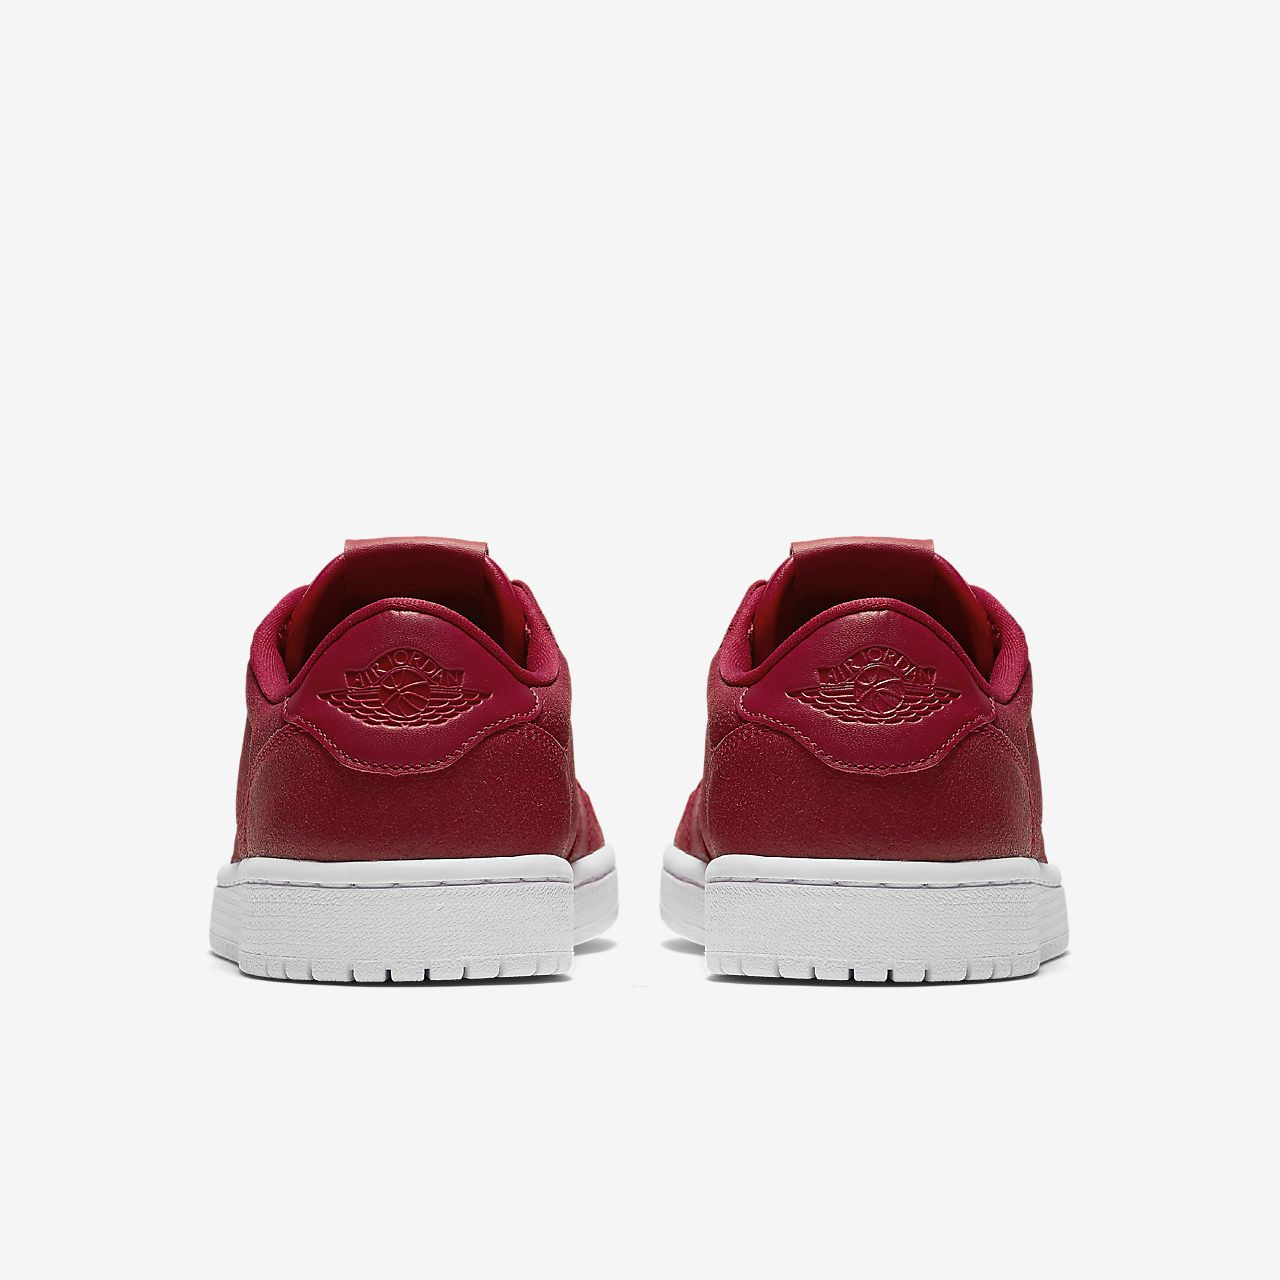 9434c839e5d5e5 Air Jordan 1 Retro Low NS Women s Shoe. Nike.com CA